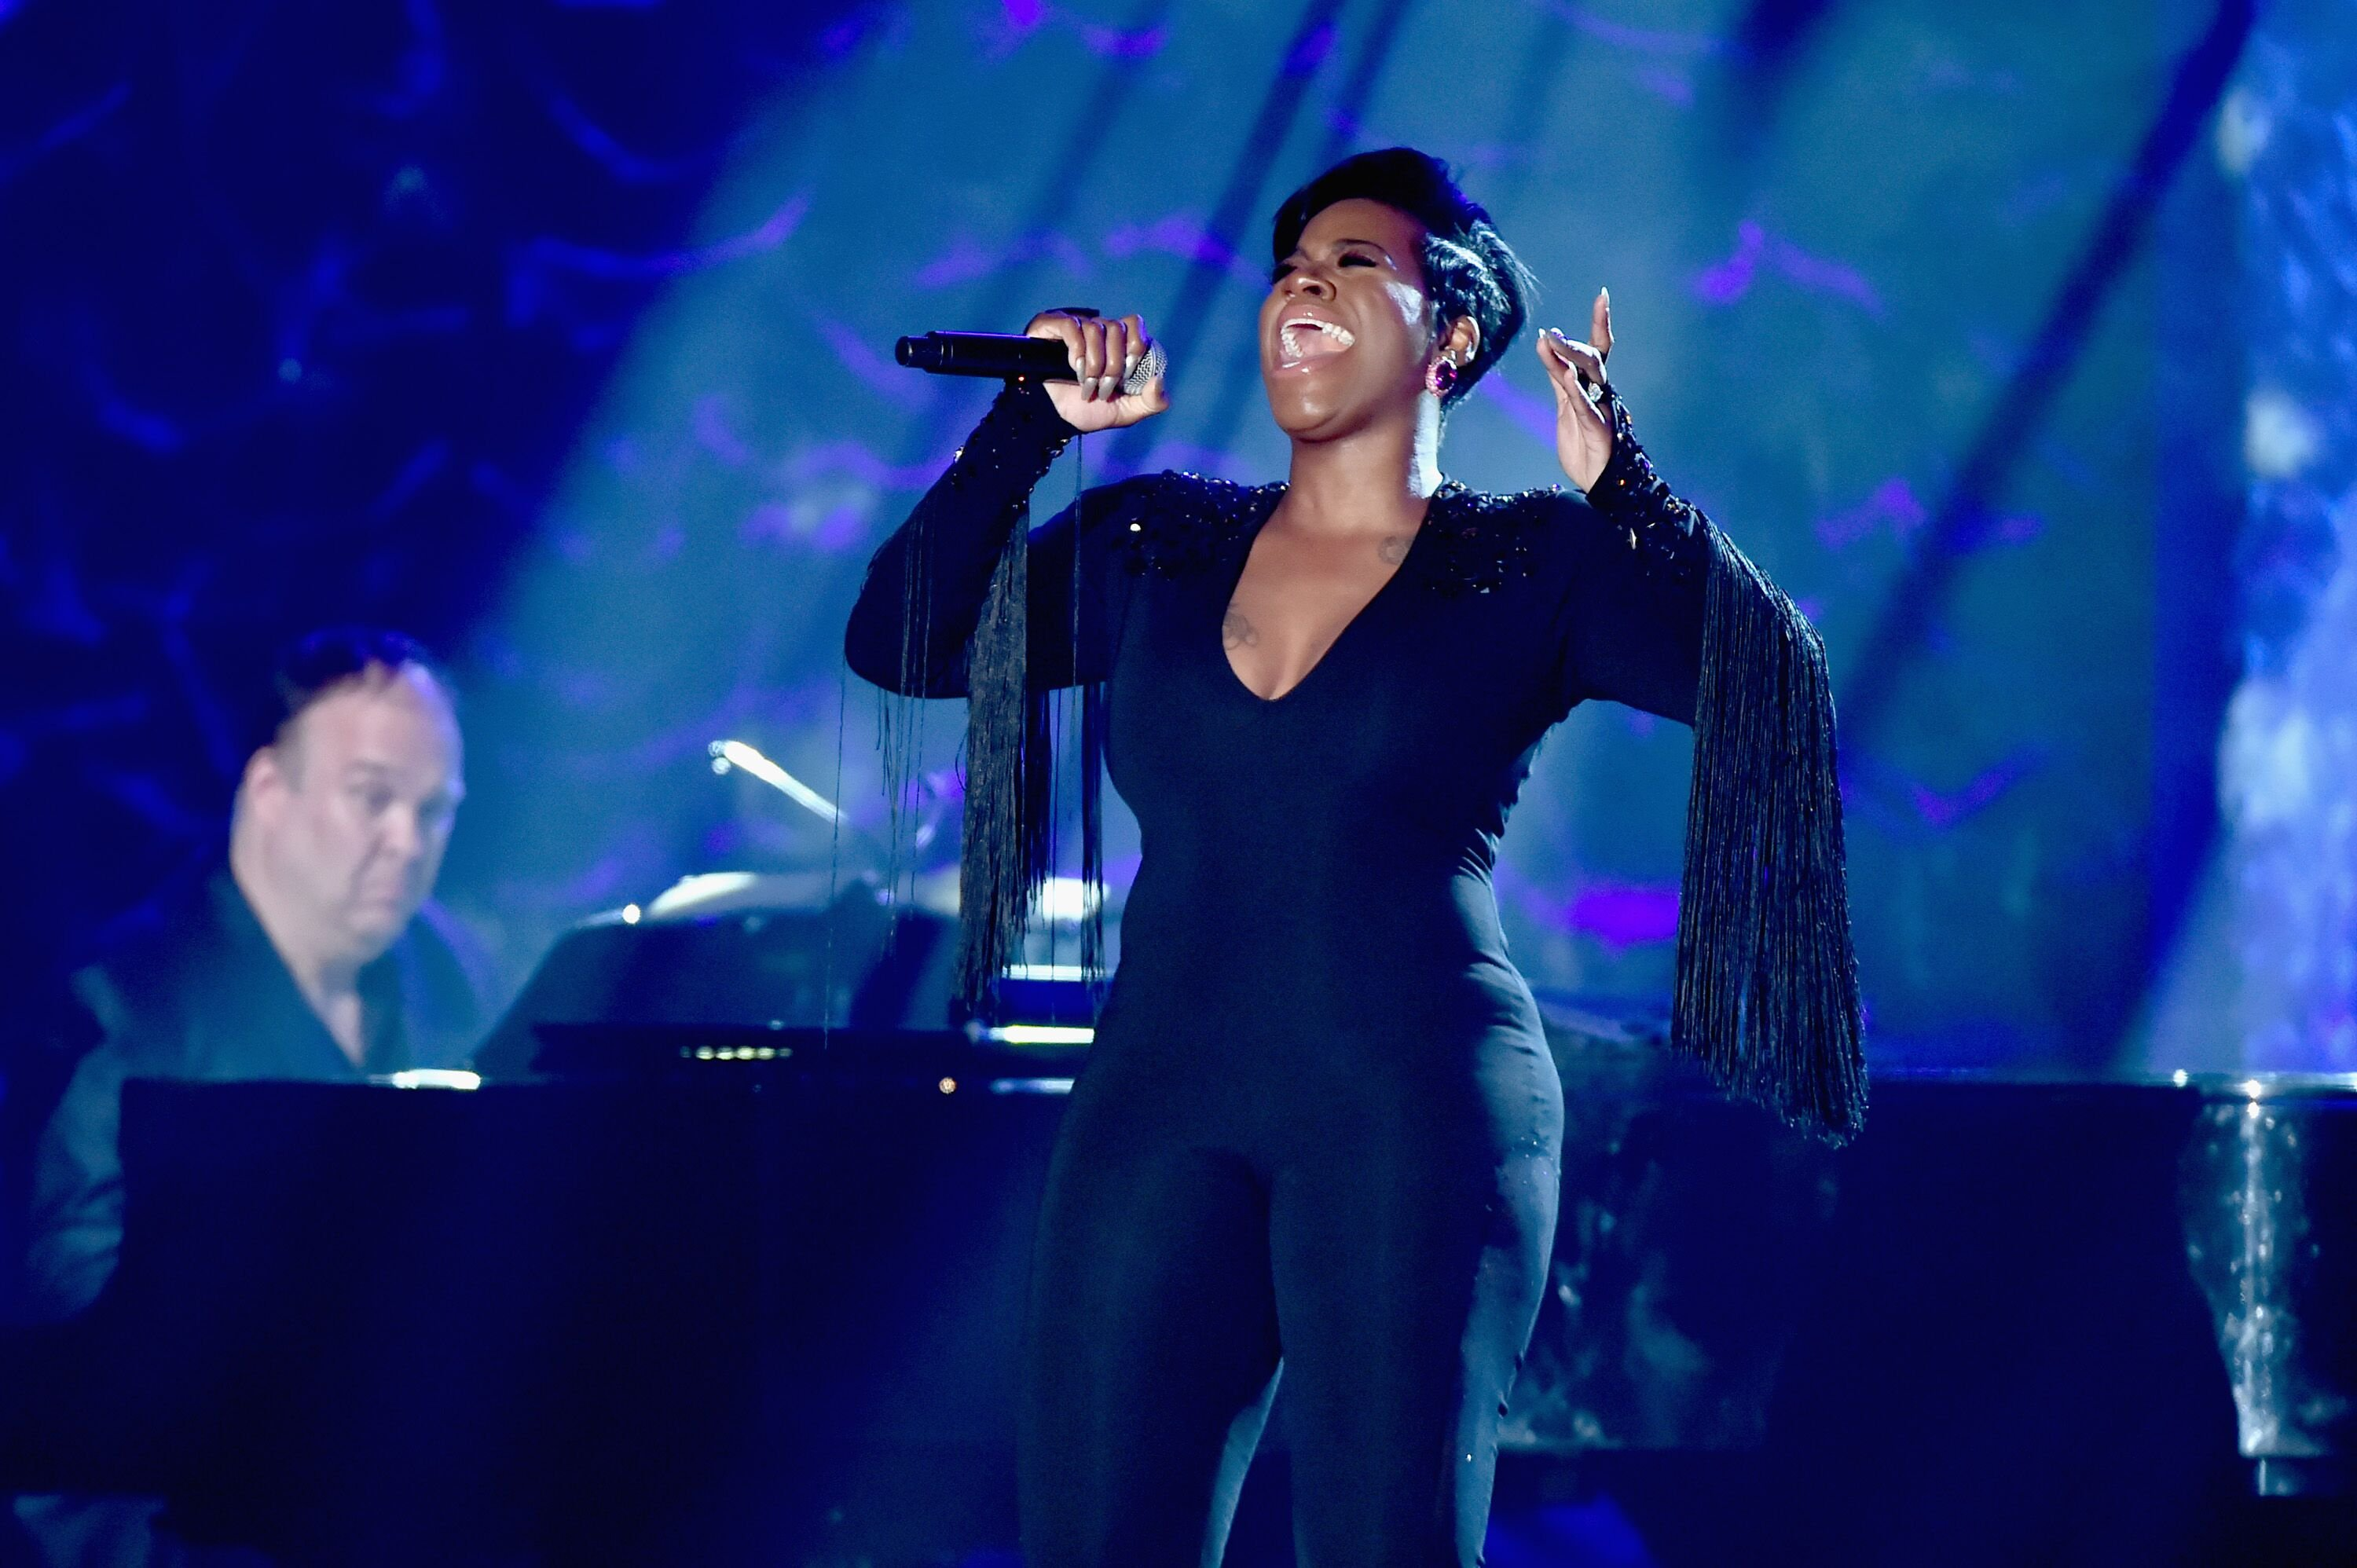 Fantasia performs onstage at the Songwriters Hall of Fame 49th Annual Induction and Awards Dinner in New York in 2018   Source: Getty Images